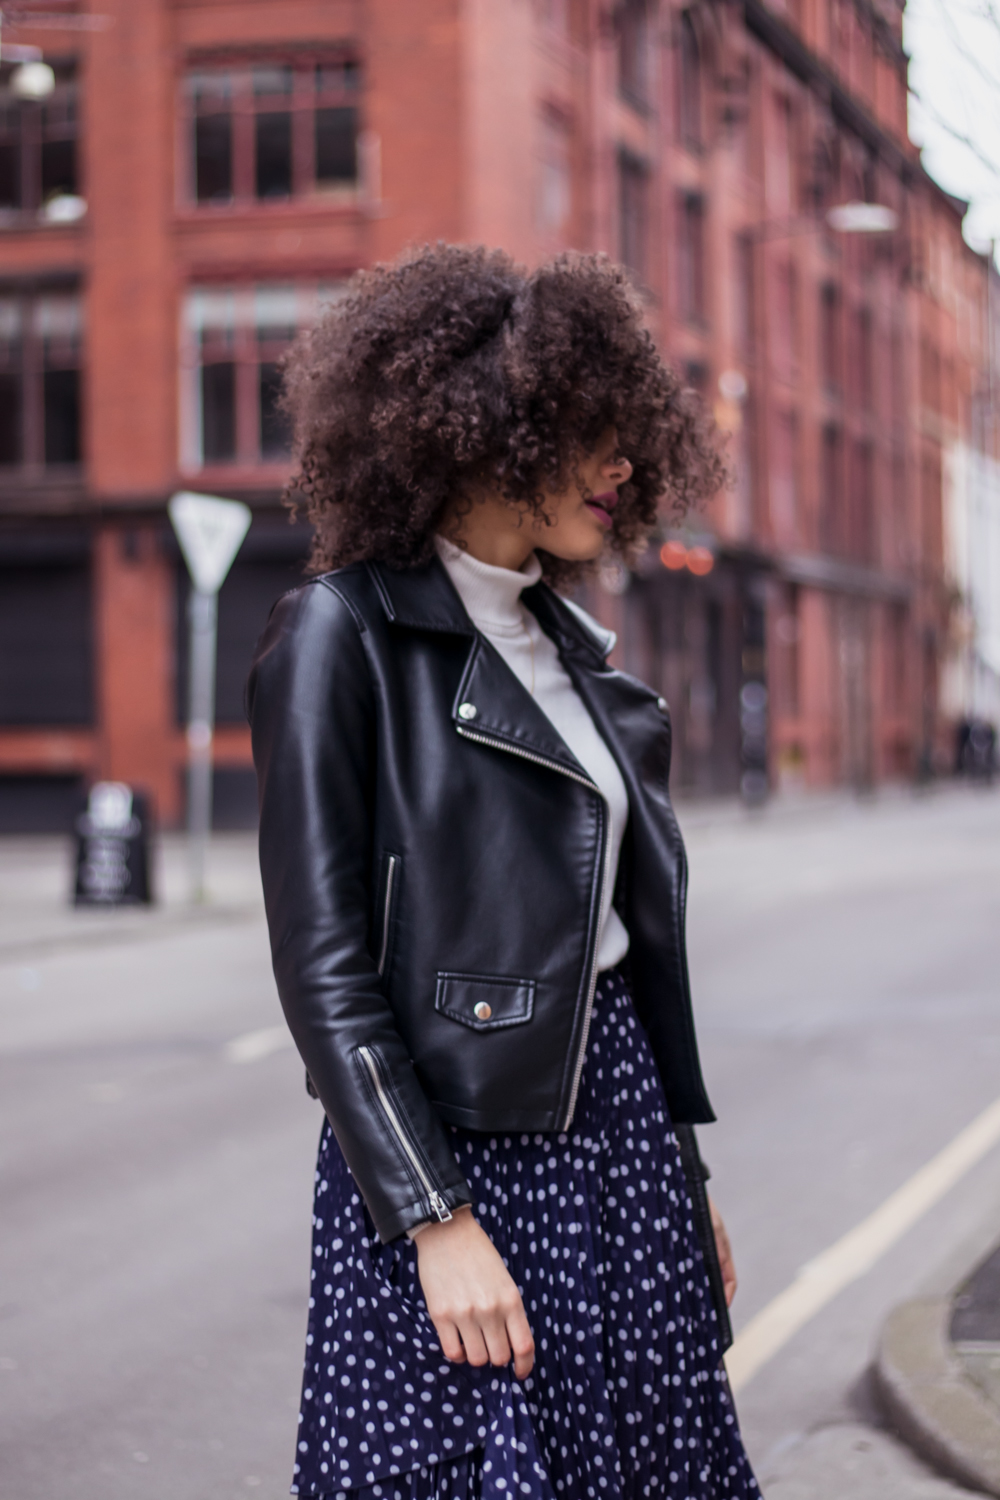 Topshop Biker Jacket and polka dot skirt